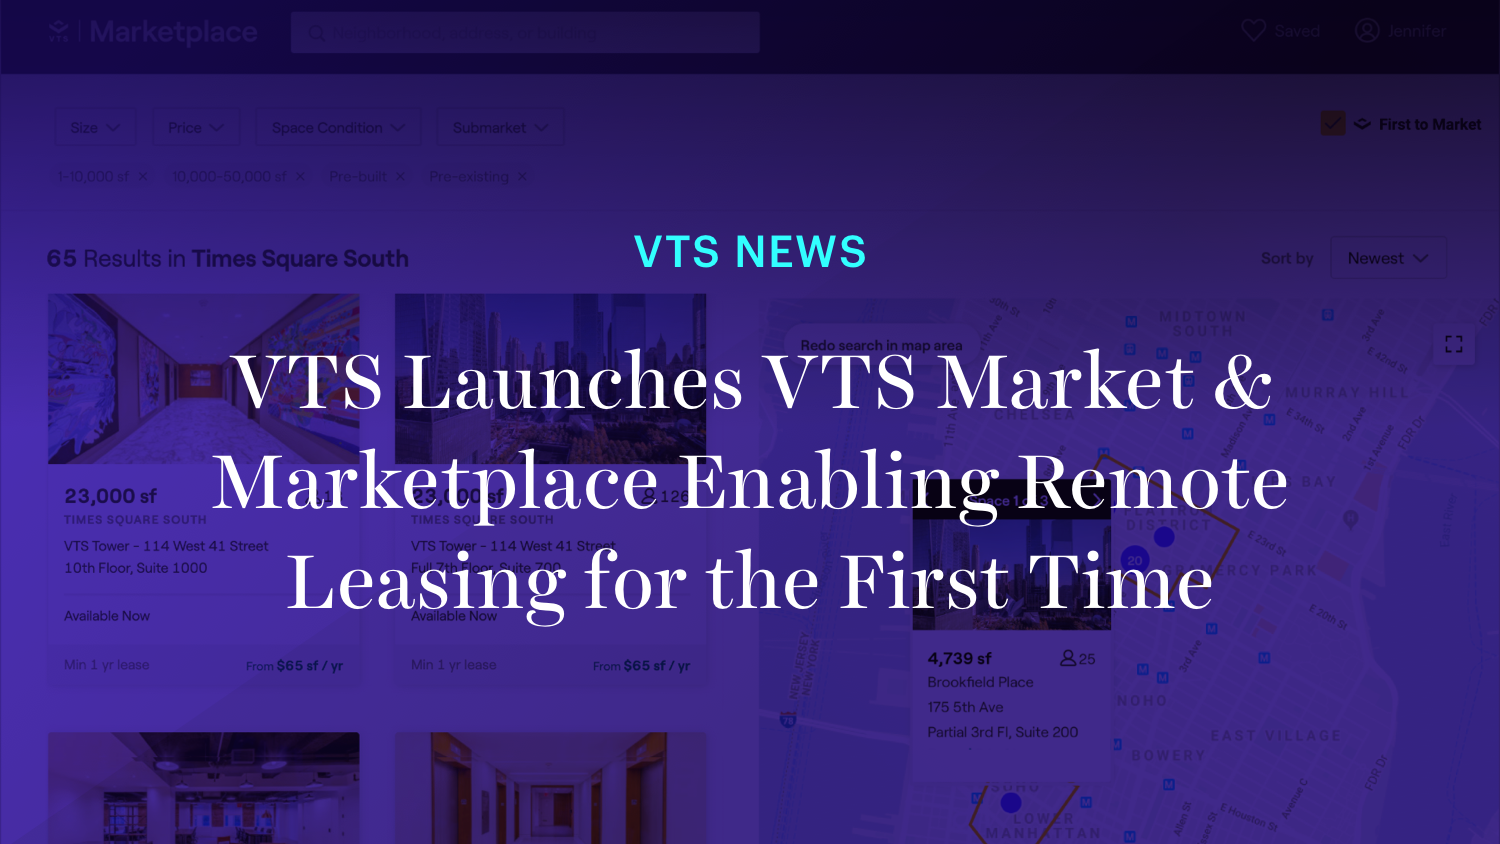 VTS Launches VTS Market and Marketplace Enabling Remote Leasing for the First Time